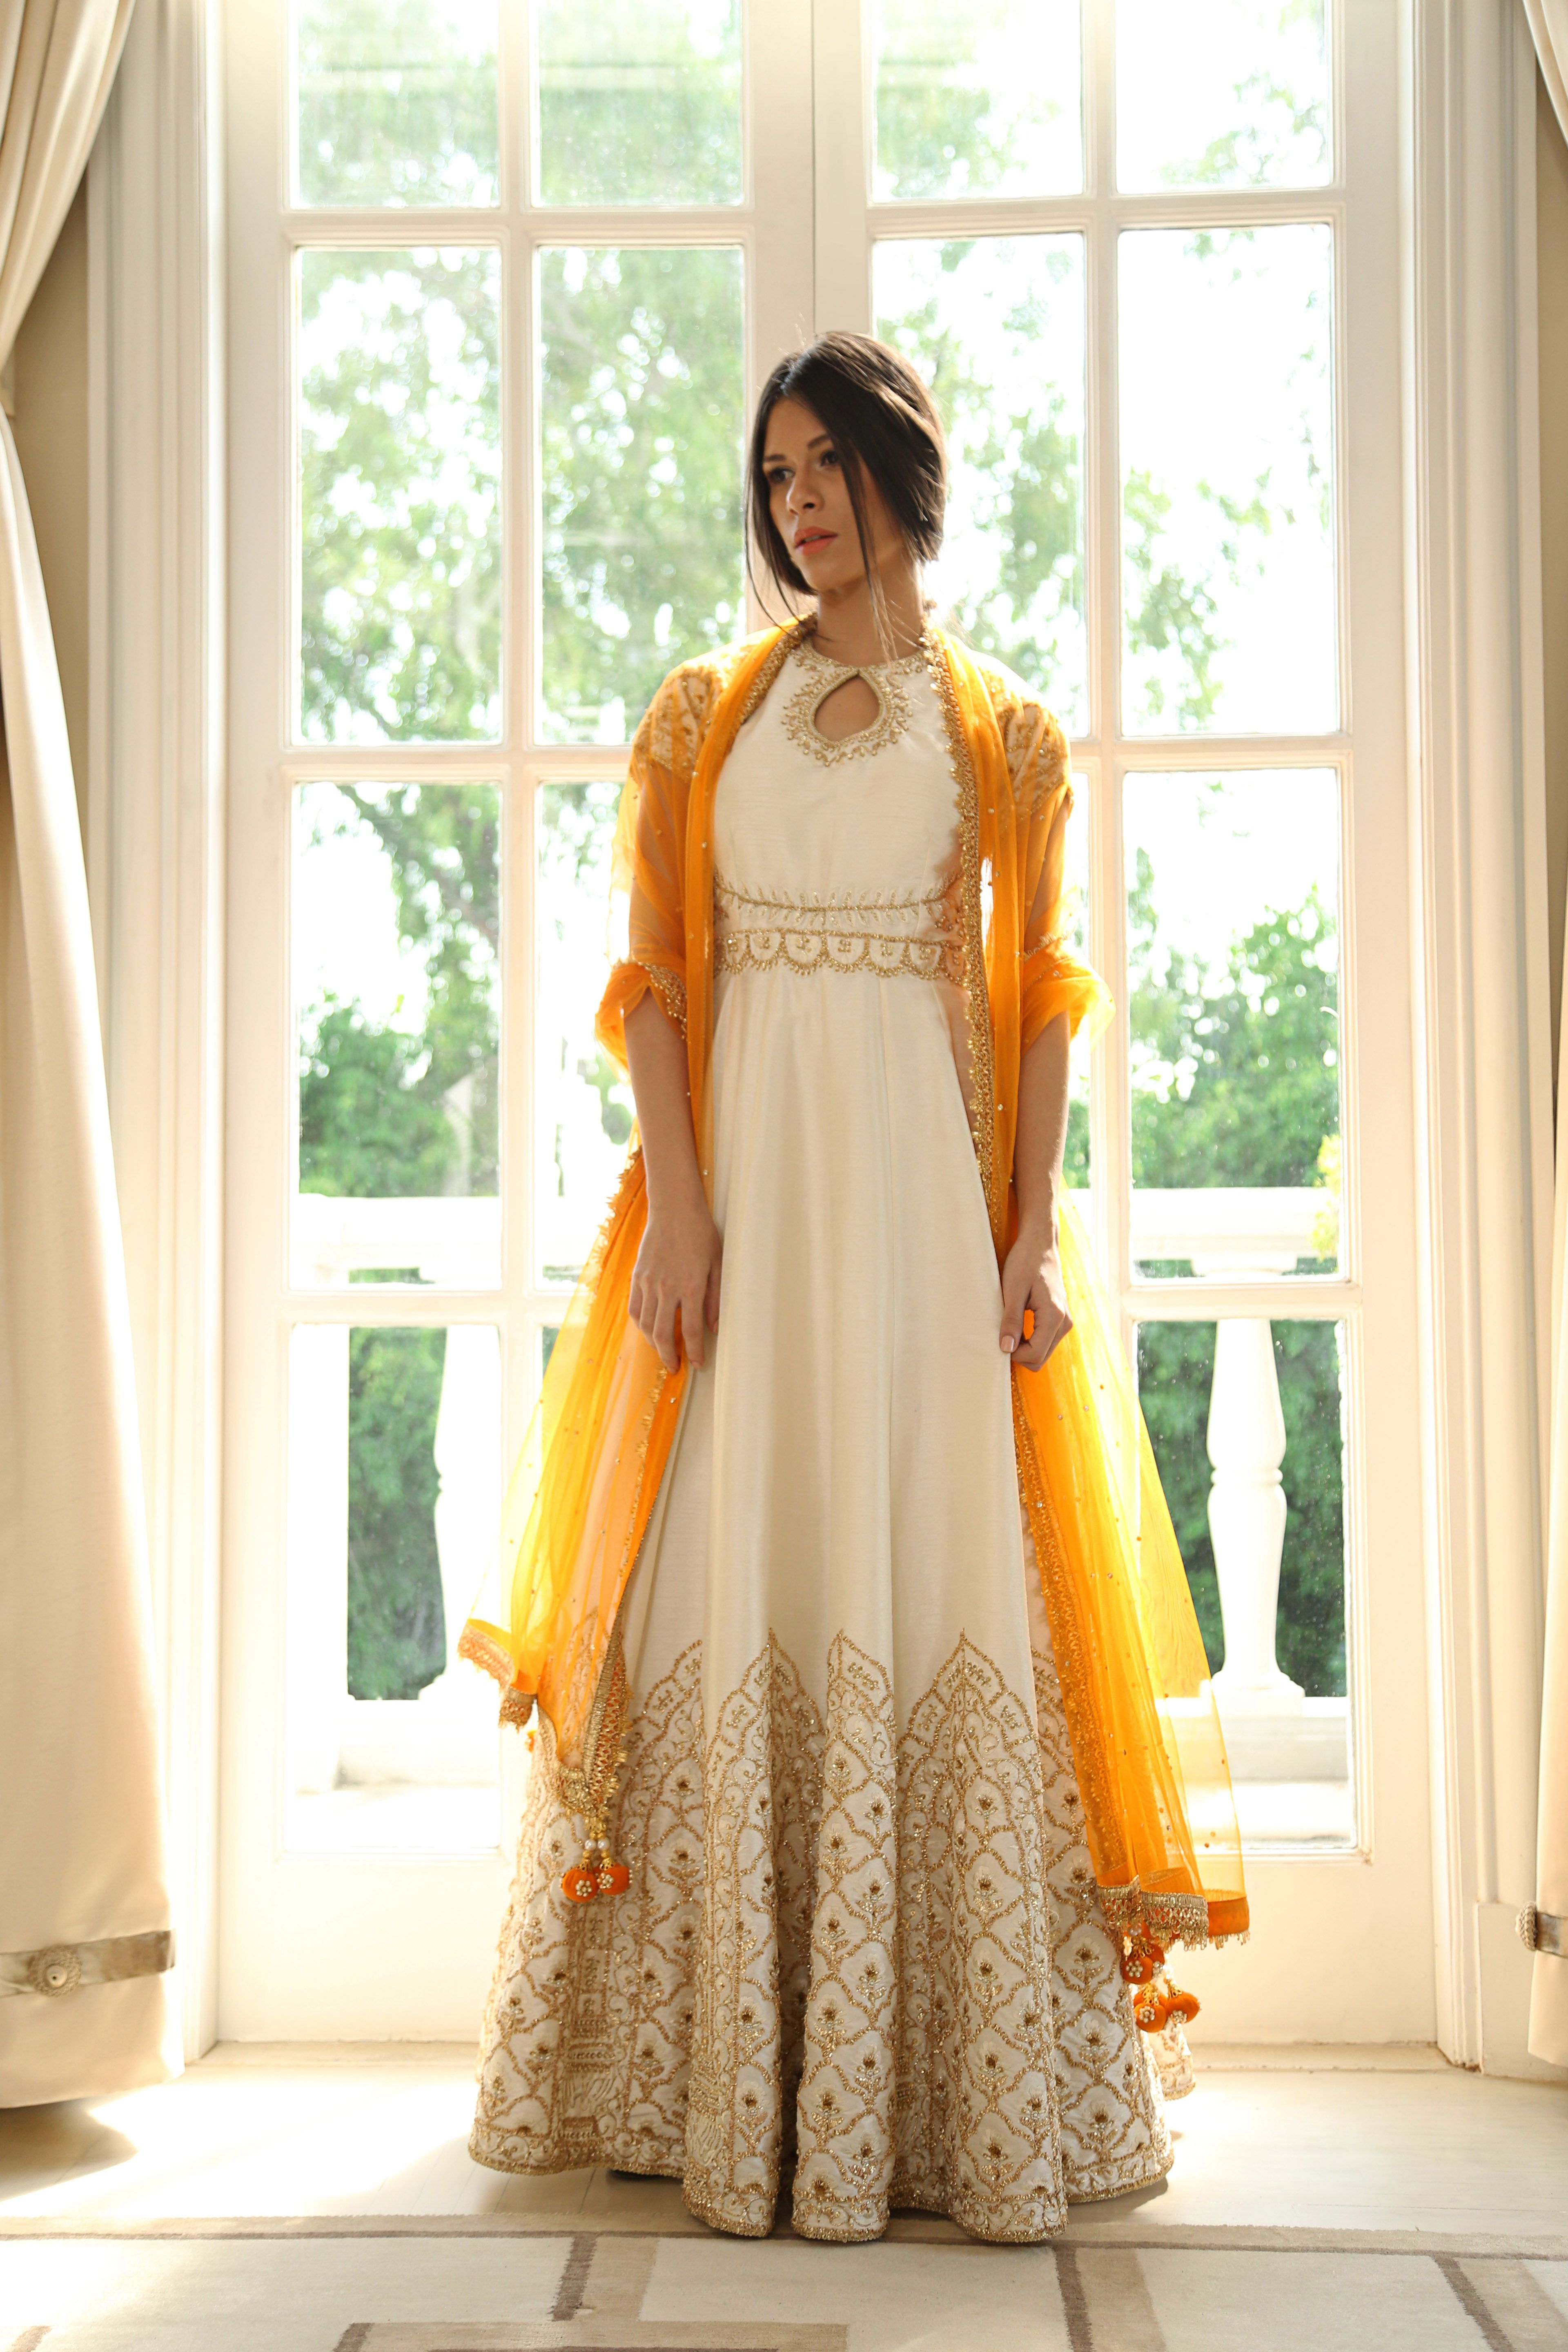 672179cf3 White Anarkali with Gold Embroidery and Gold Dupatta Chunni